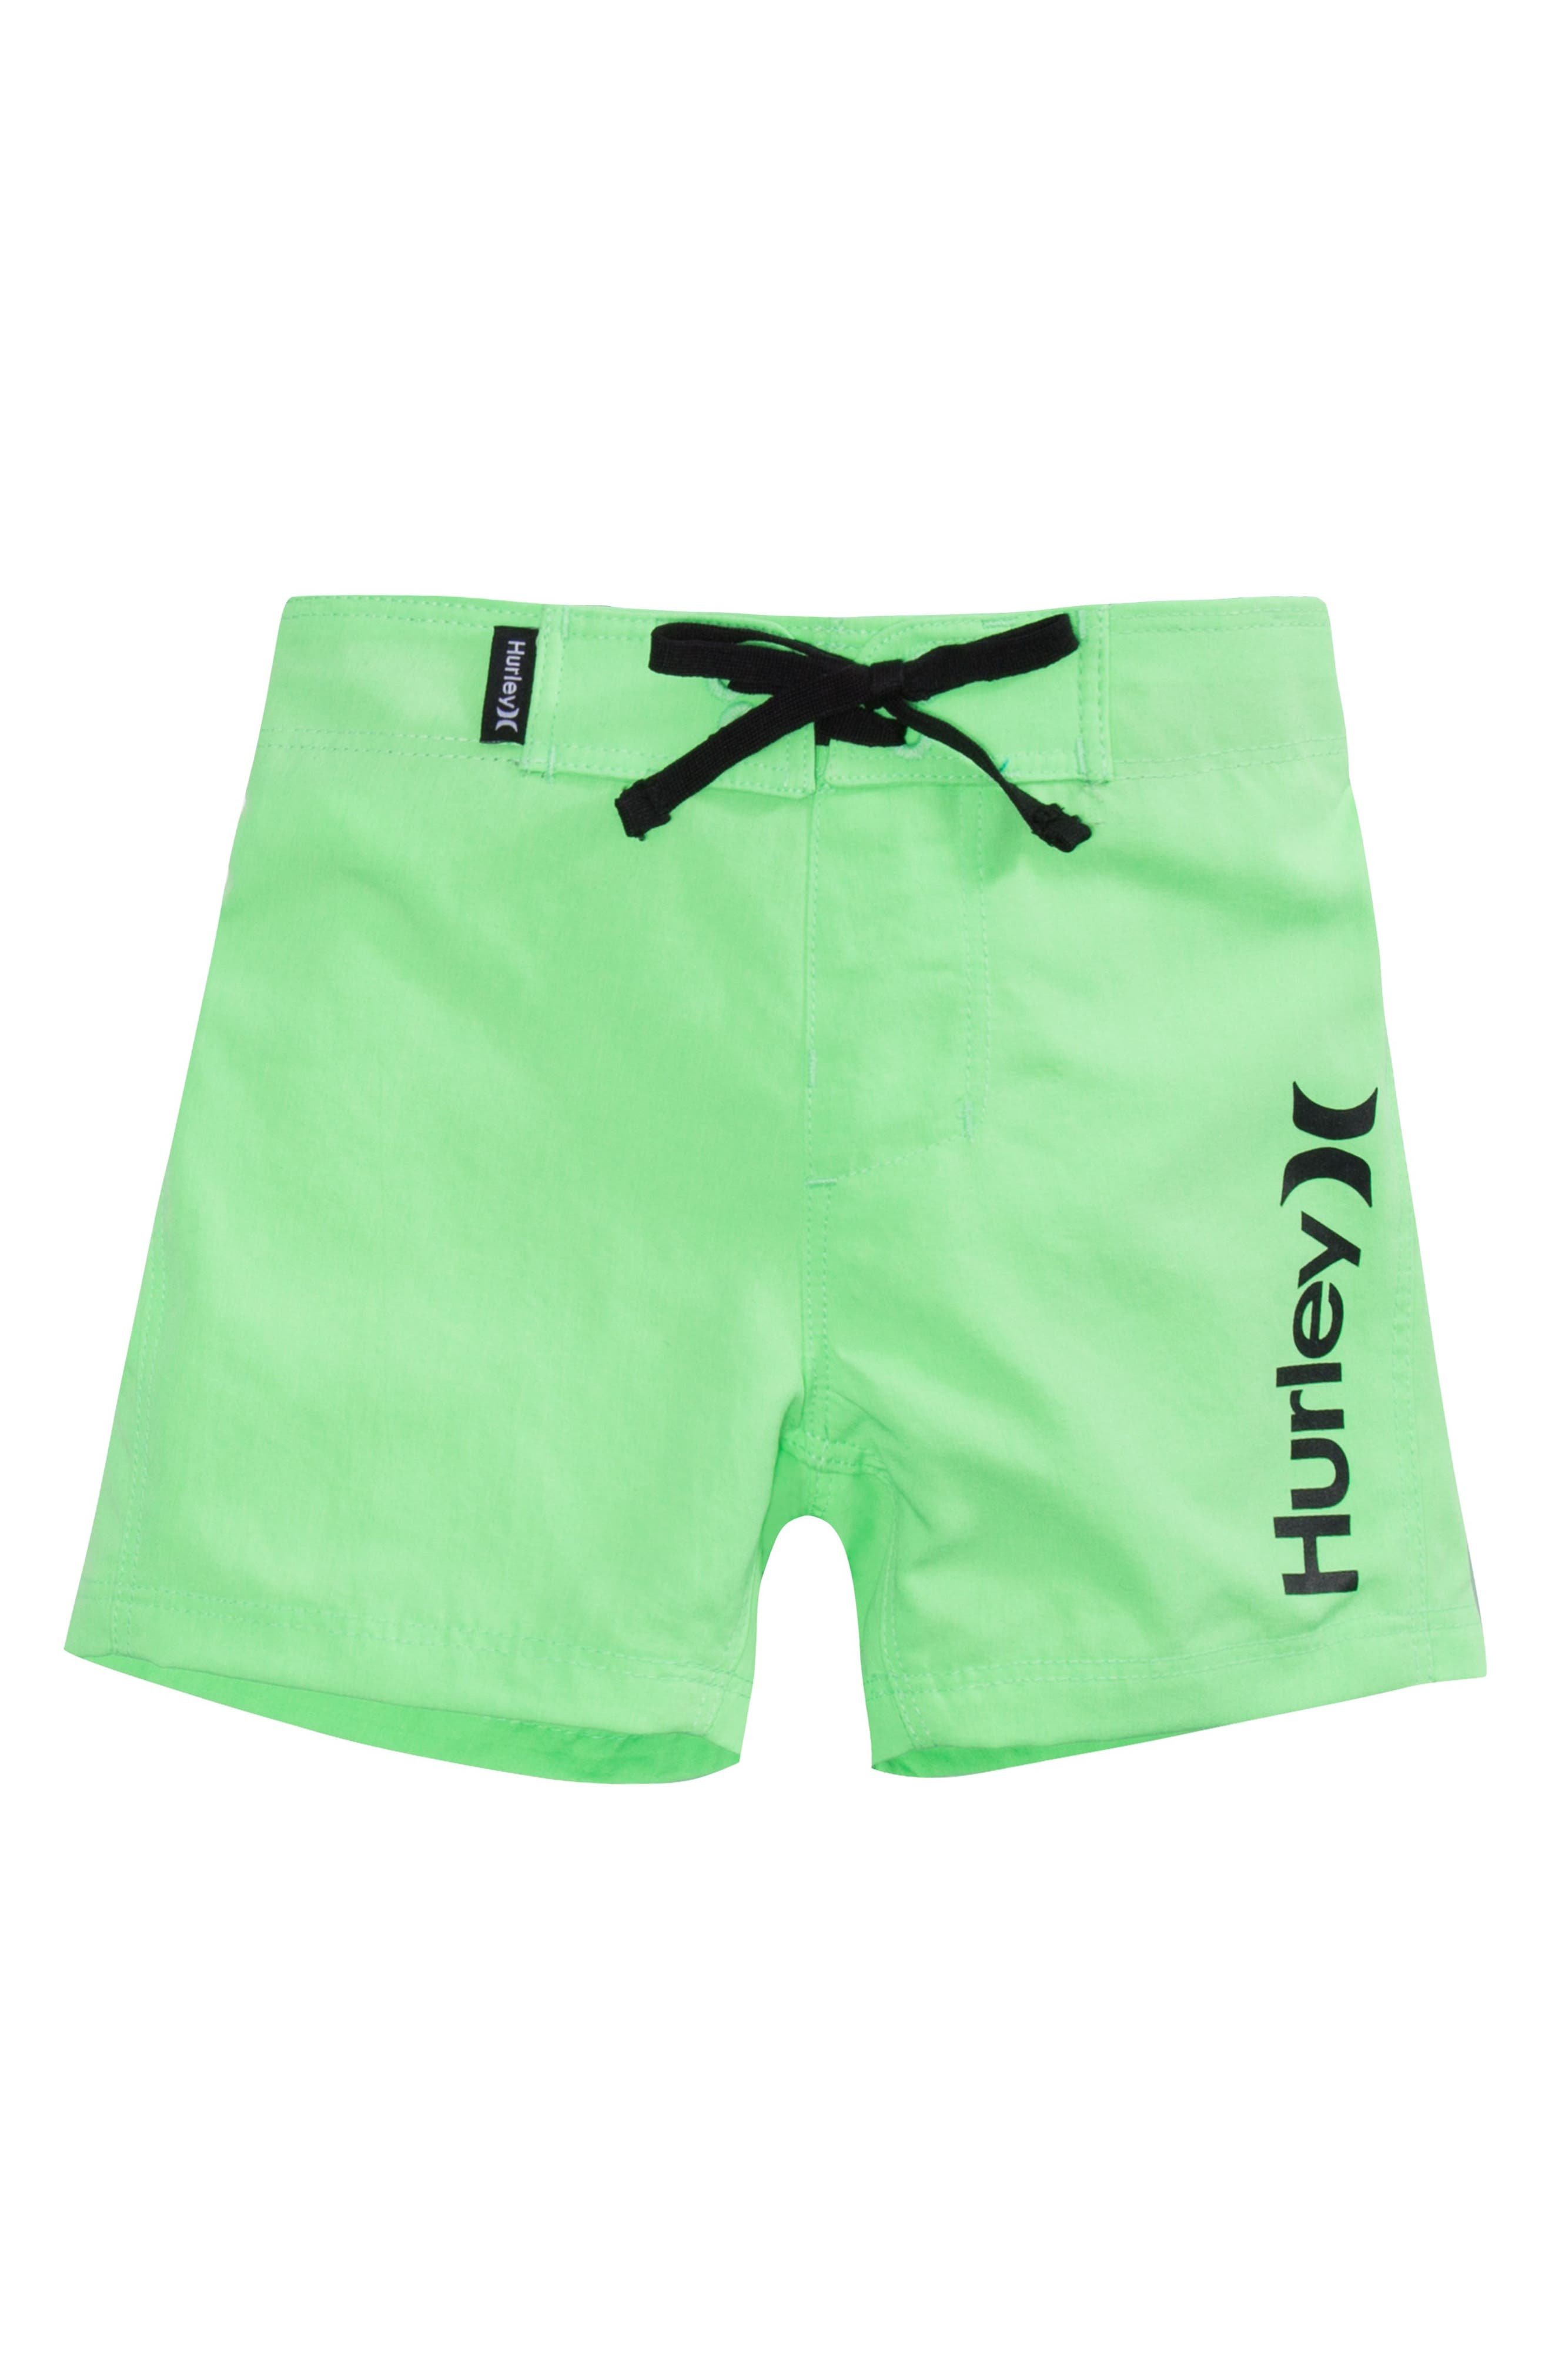 Heathered One & Only Board Shorts,                         Main,                         color, 300